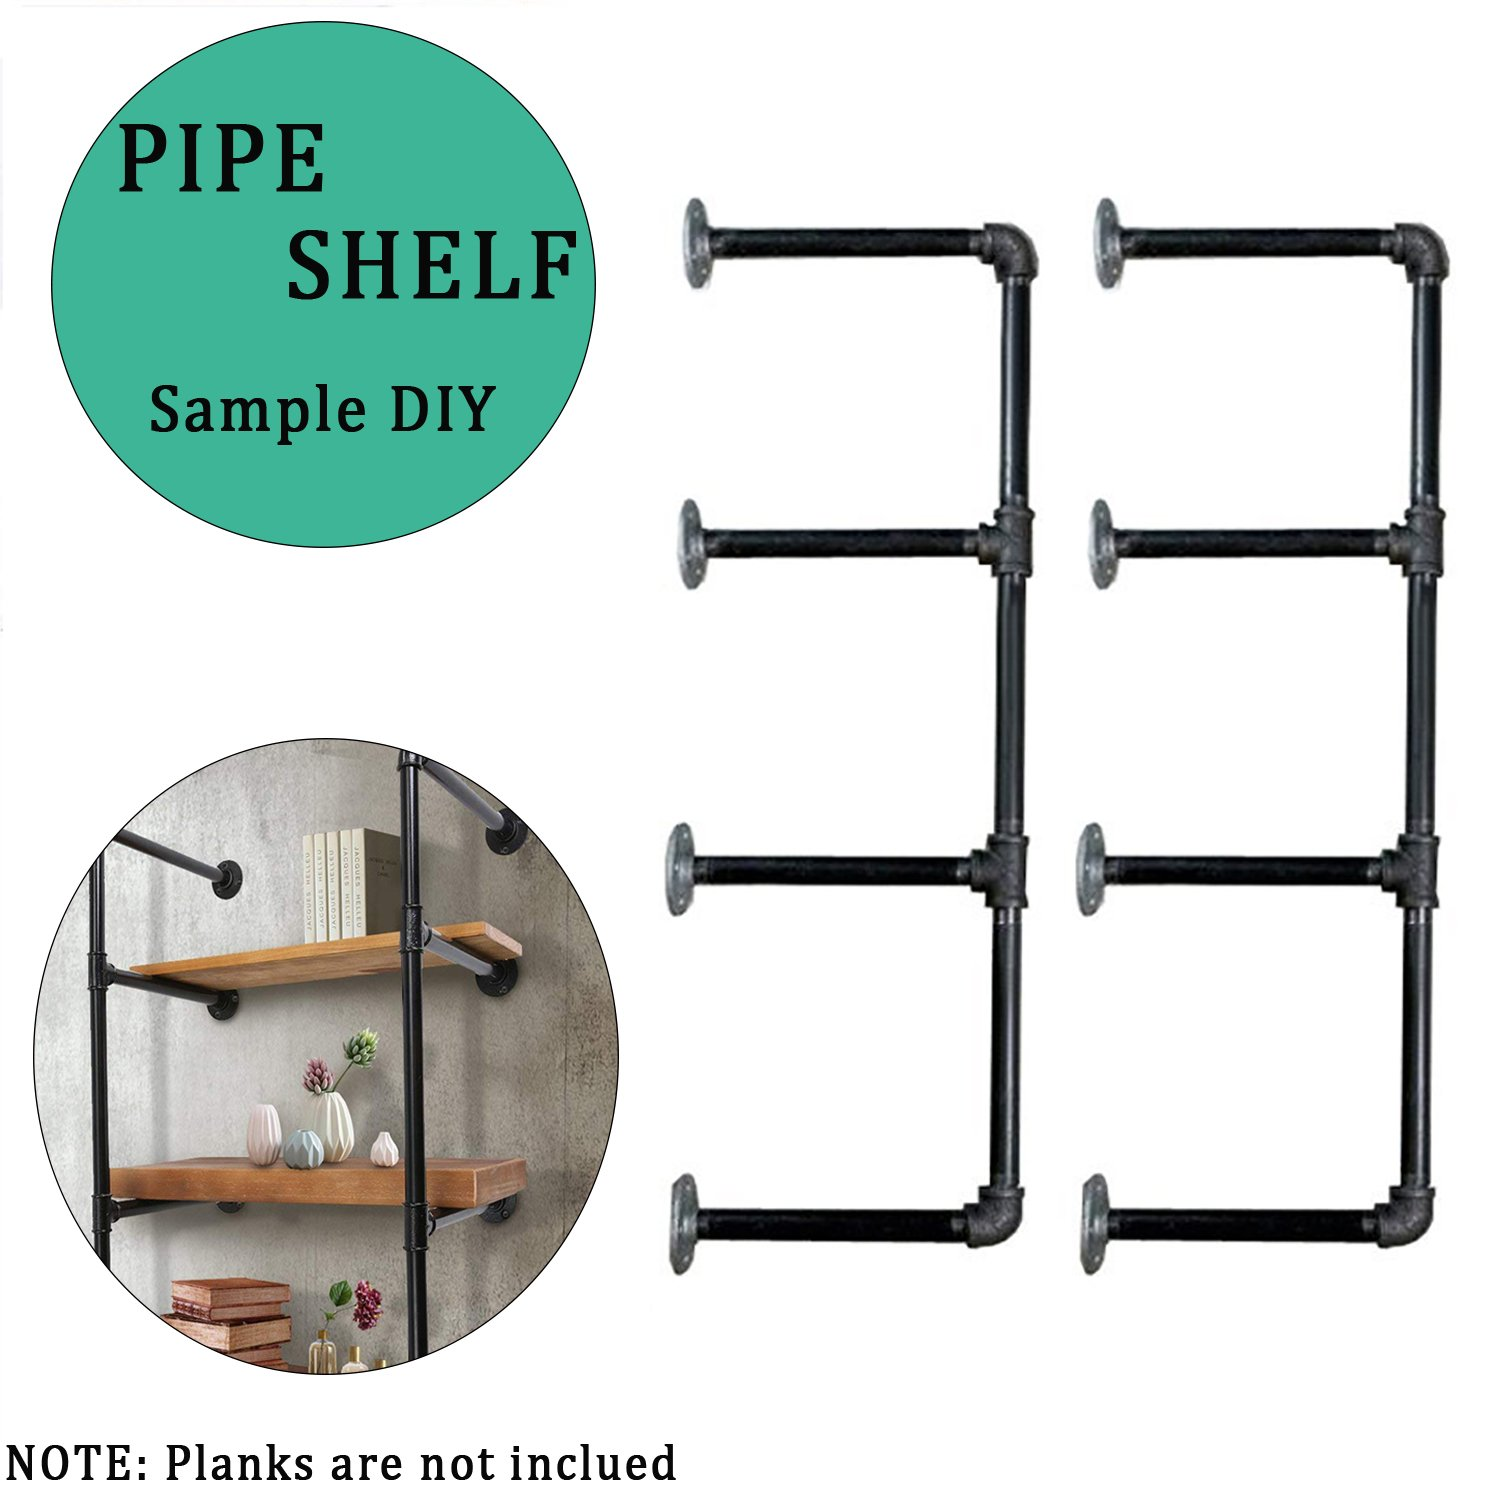 Industrial Retro Wall Mount Iron Pipe Shelf, Brackets DIY Storage Shelving Bookshelf for Home Improvement Kitchen Office Living Room (2pcs) andmei